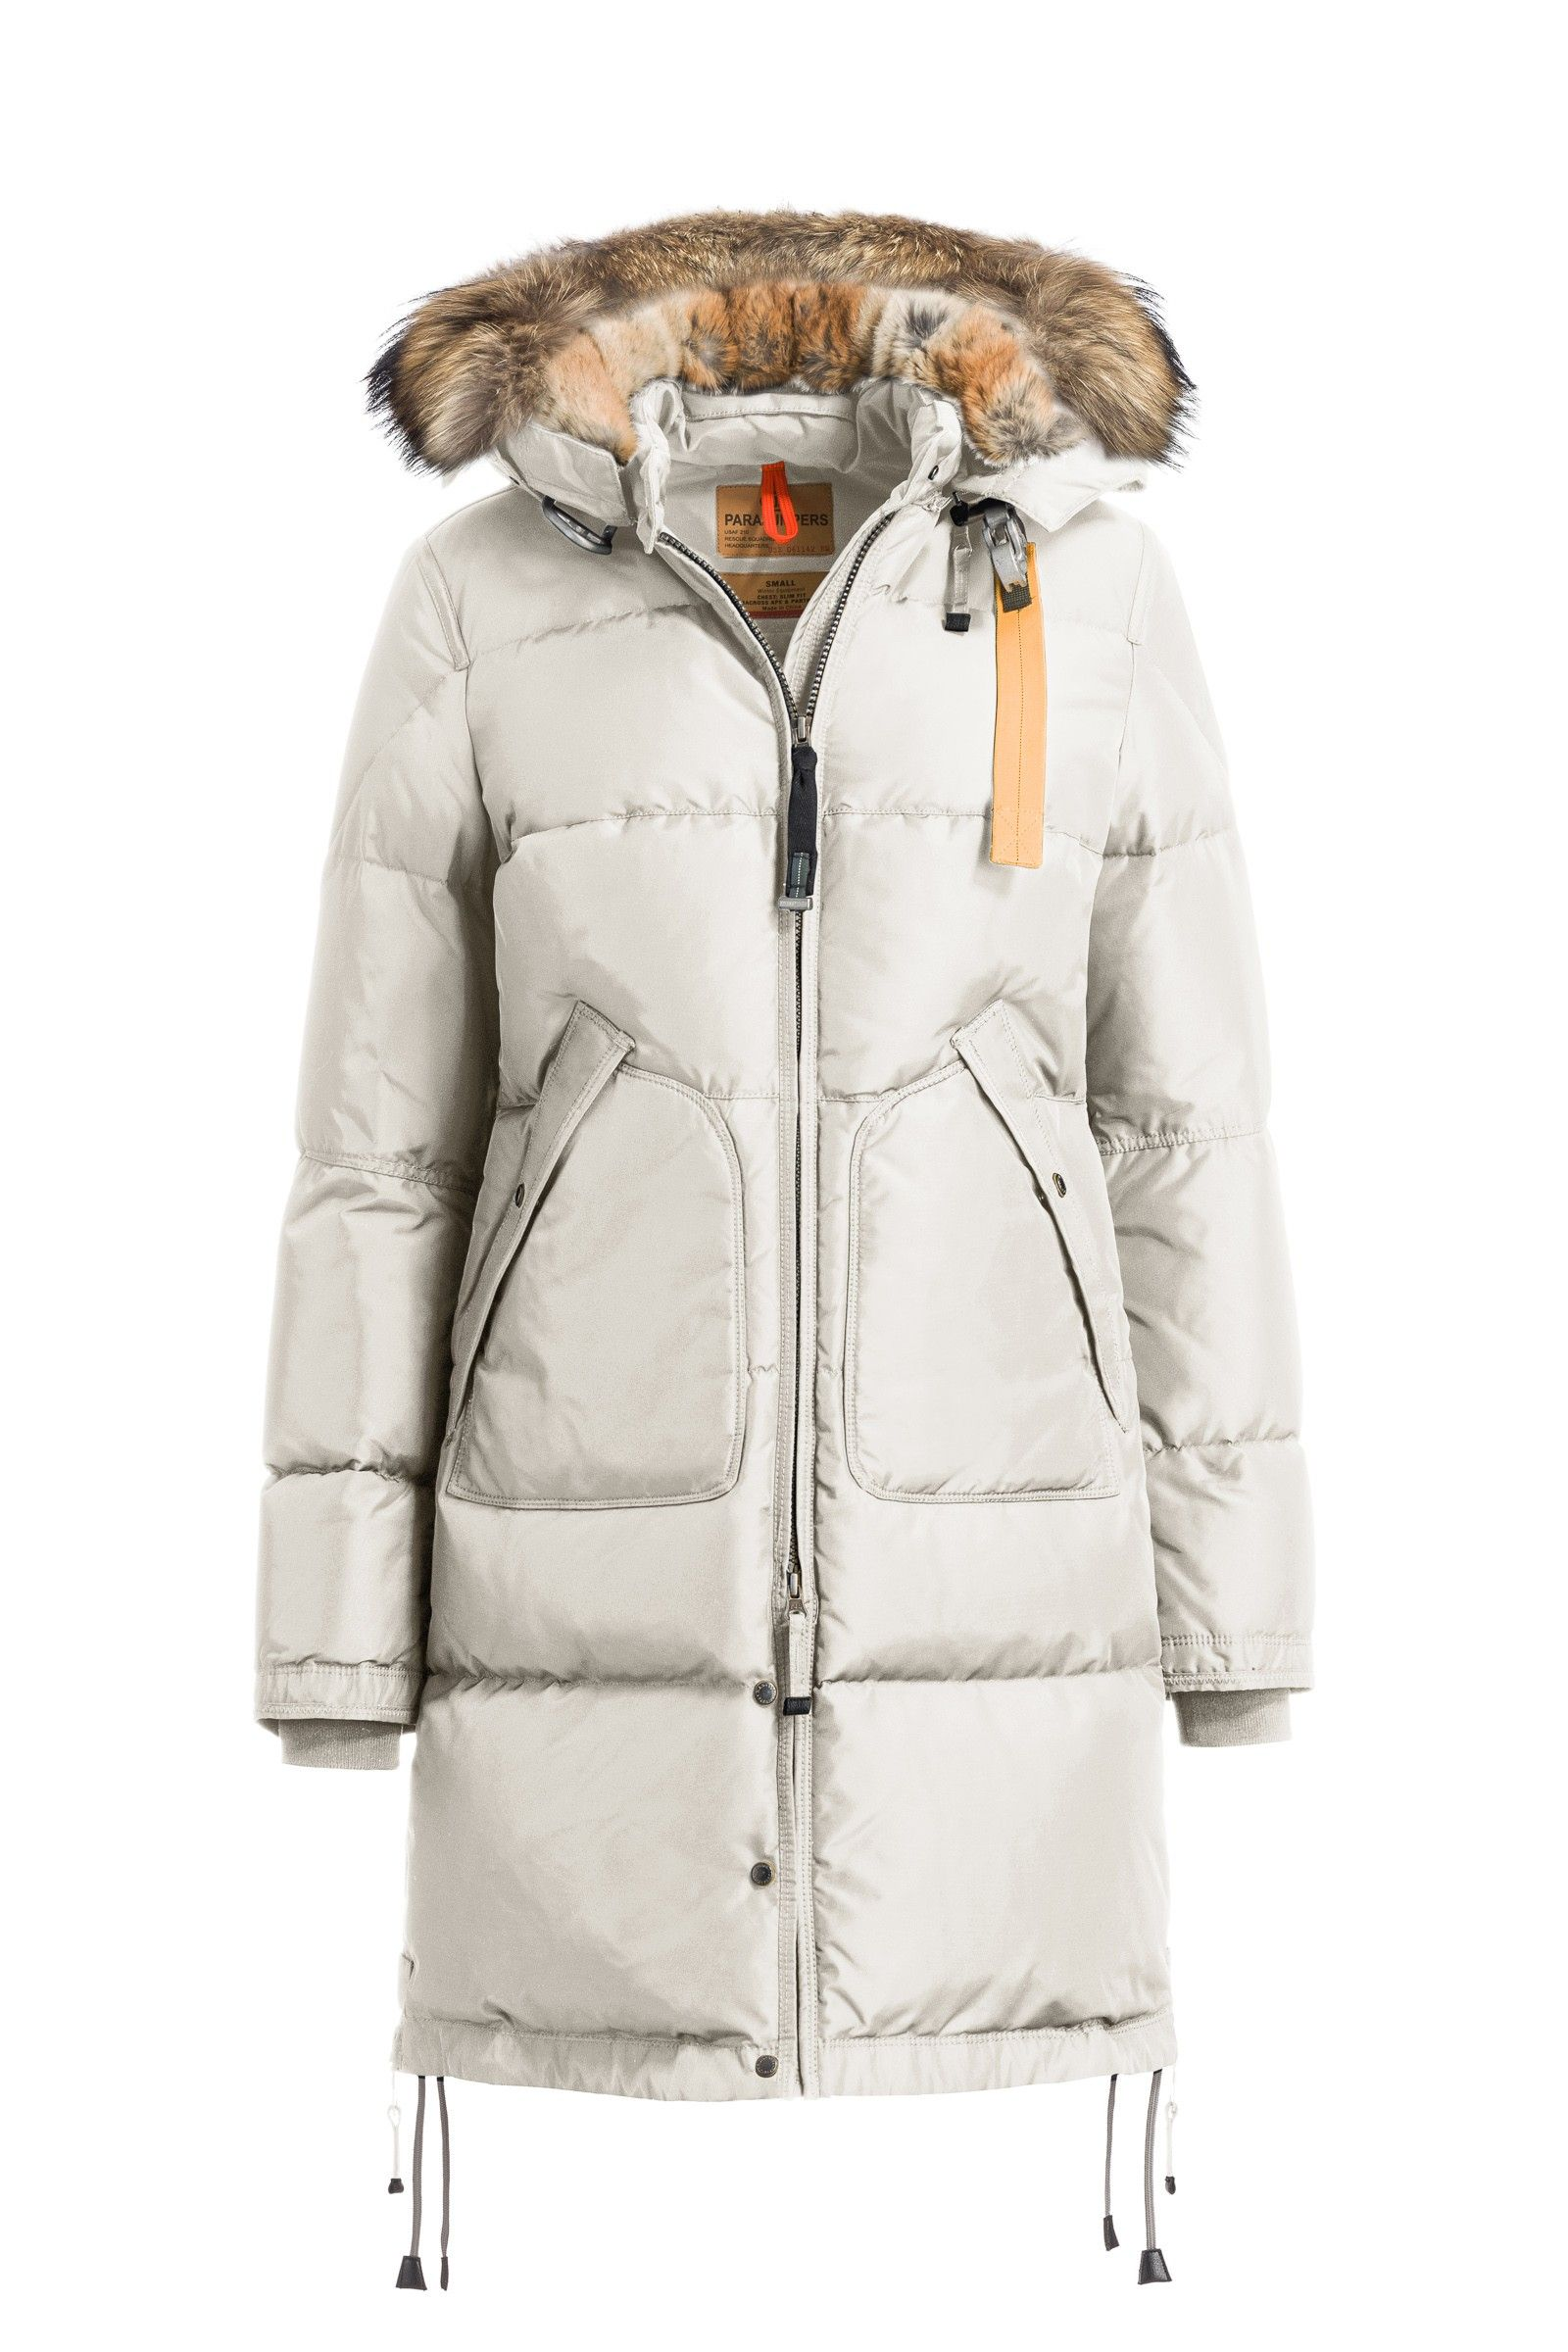 parajumpers store BEIGE